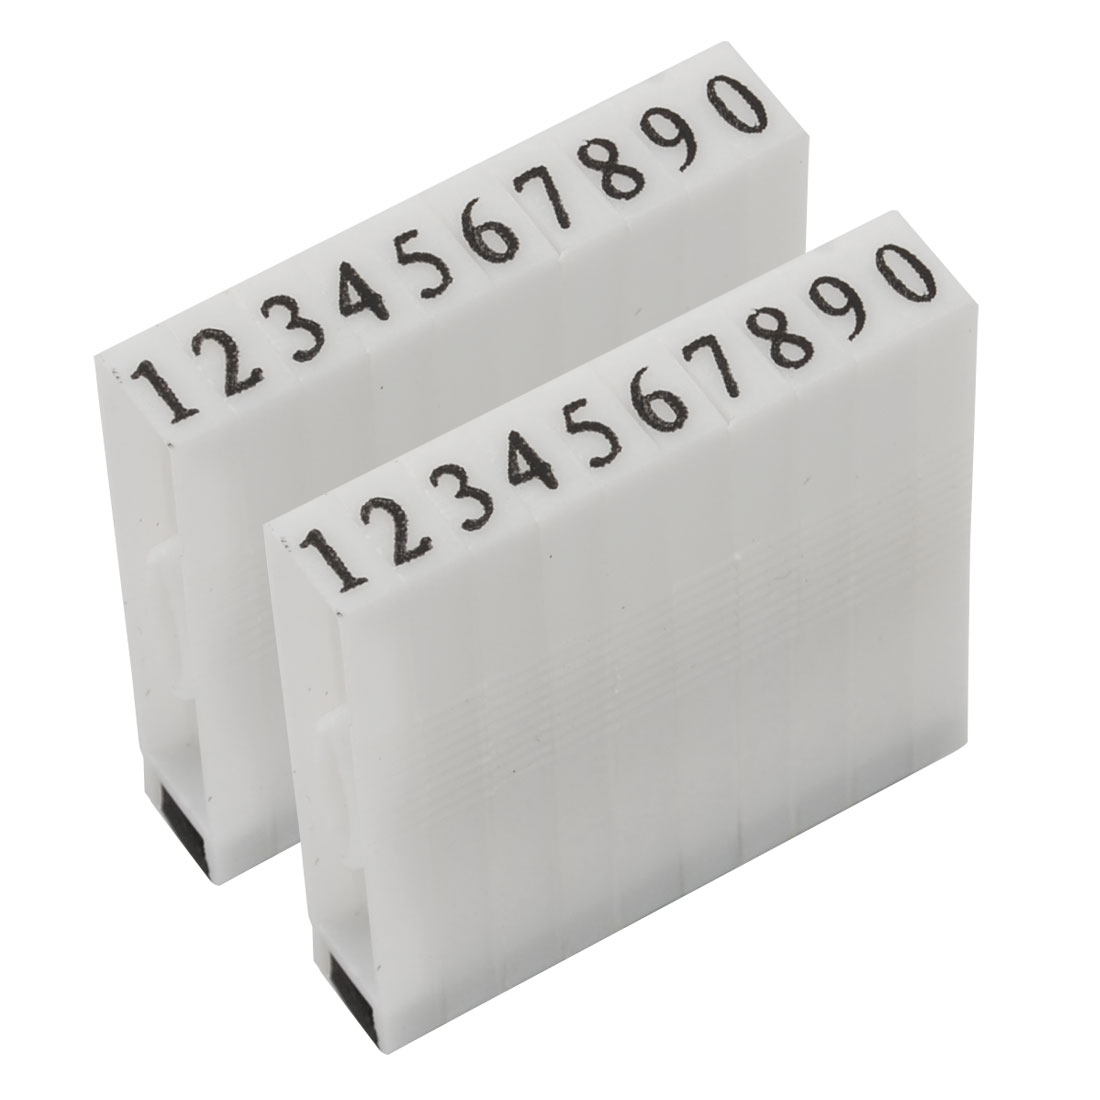 2 Pcs Detachable 0-9 Digits Arabic Numerals Plastic Stamp Set